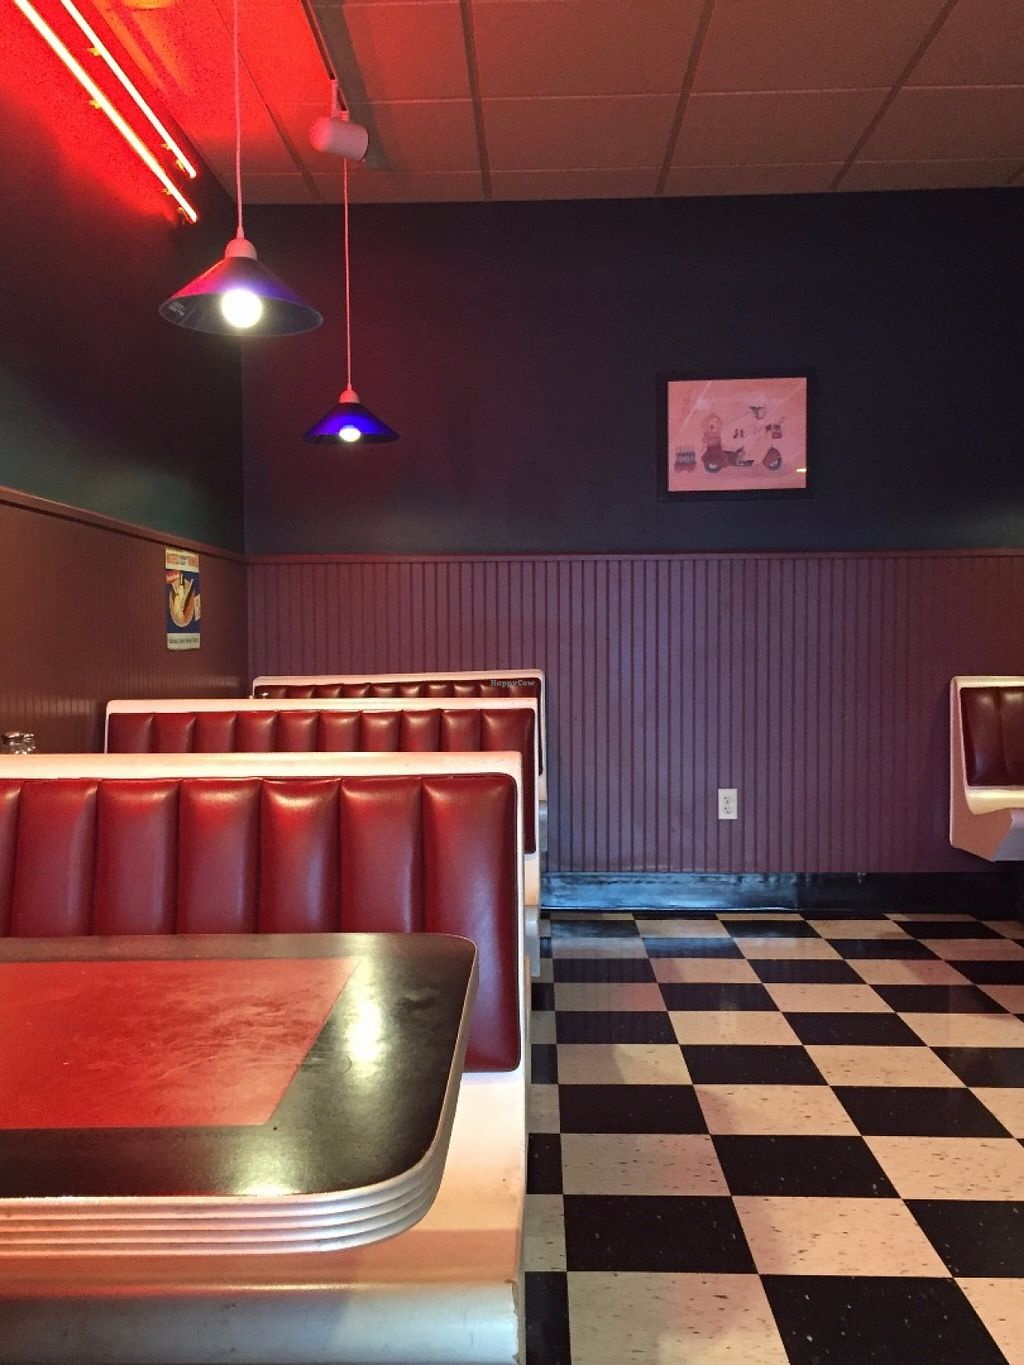 """Photo of Pizza D'Action  by <a href=""""/members/profile/HerbivoreJer"""">HerbivoreJer</a> <br/>nice looking place <br/> June 4, 2016  - <a href='/contact/abuse/image/68185/152333'>Report</a>"""